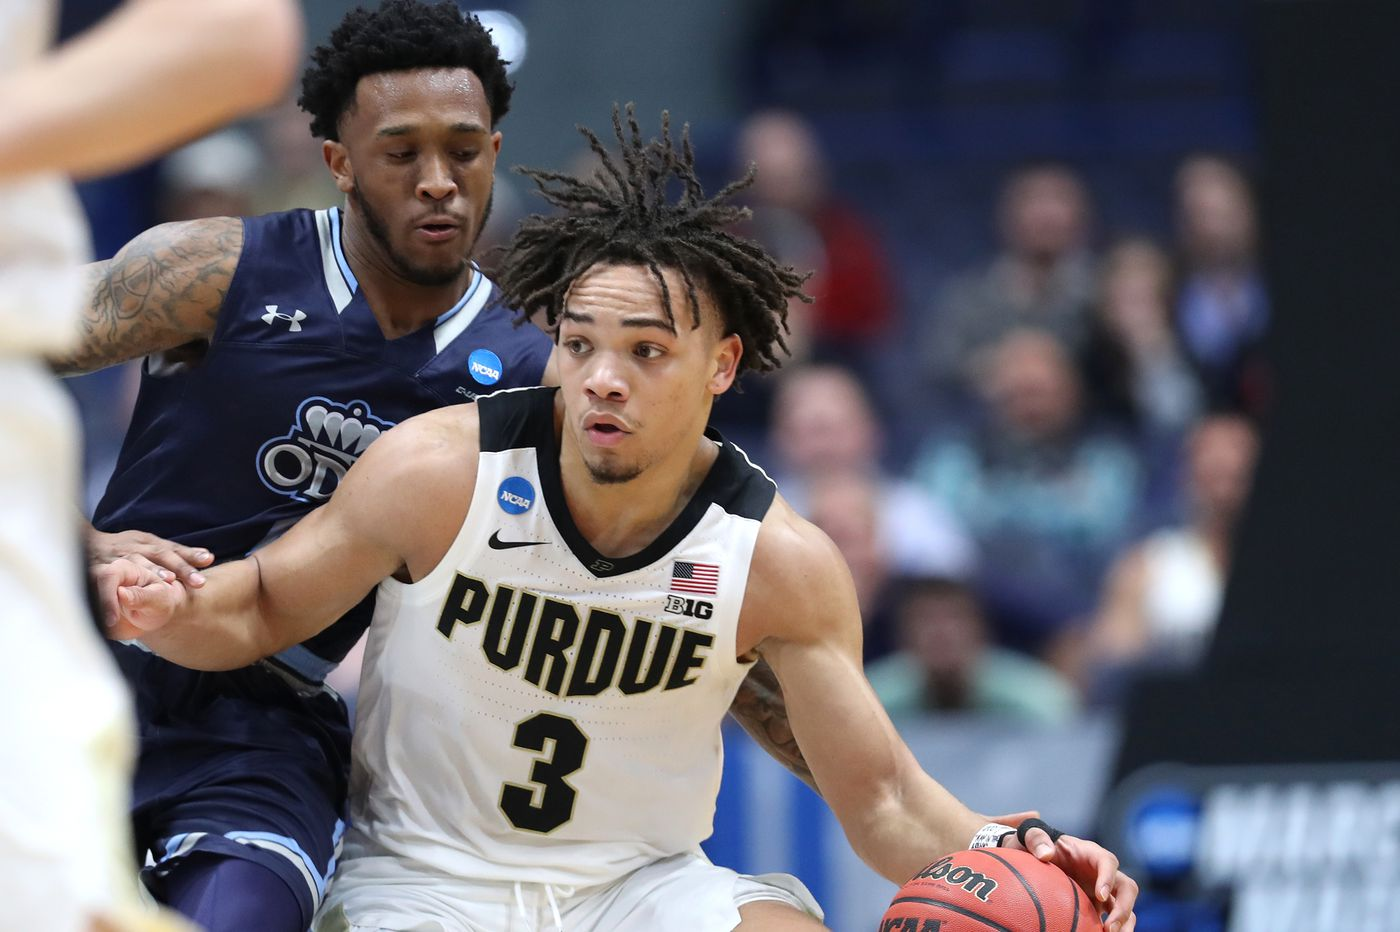 Villanova-Purdue preview: What to watch for in the NCAA Tournament second round matchup